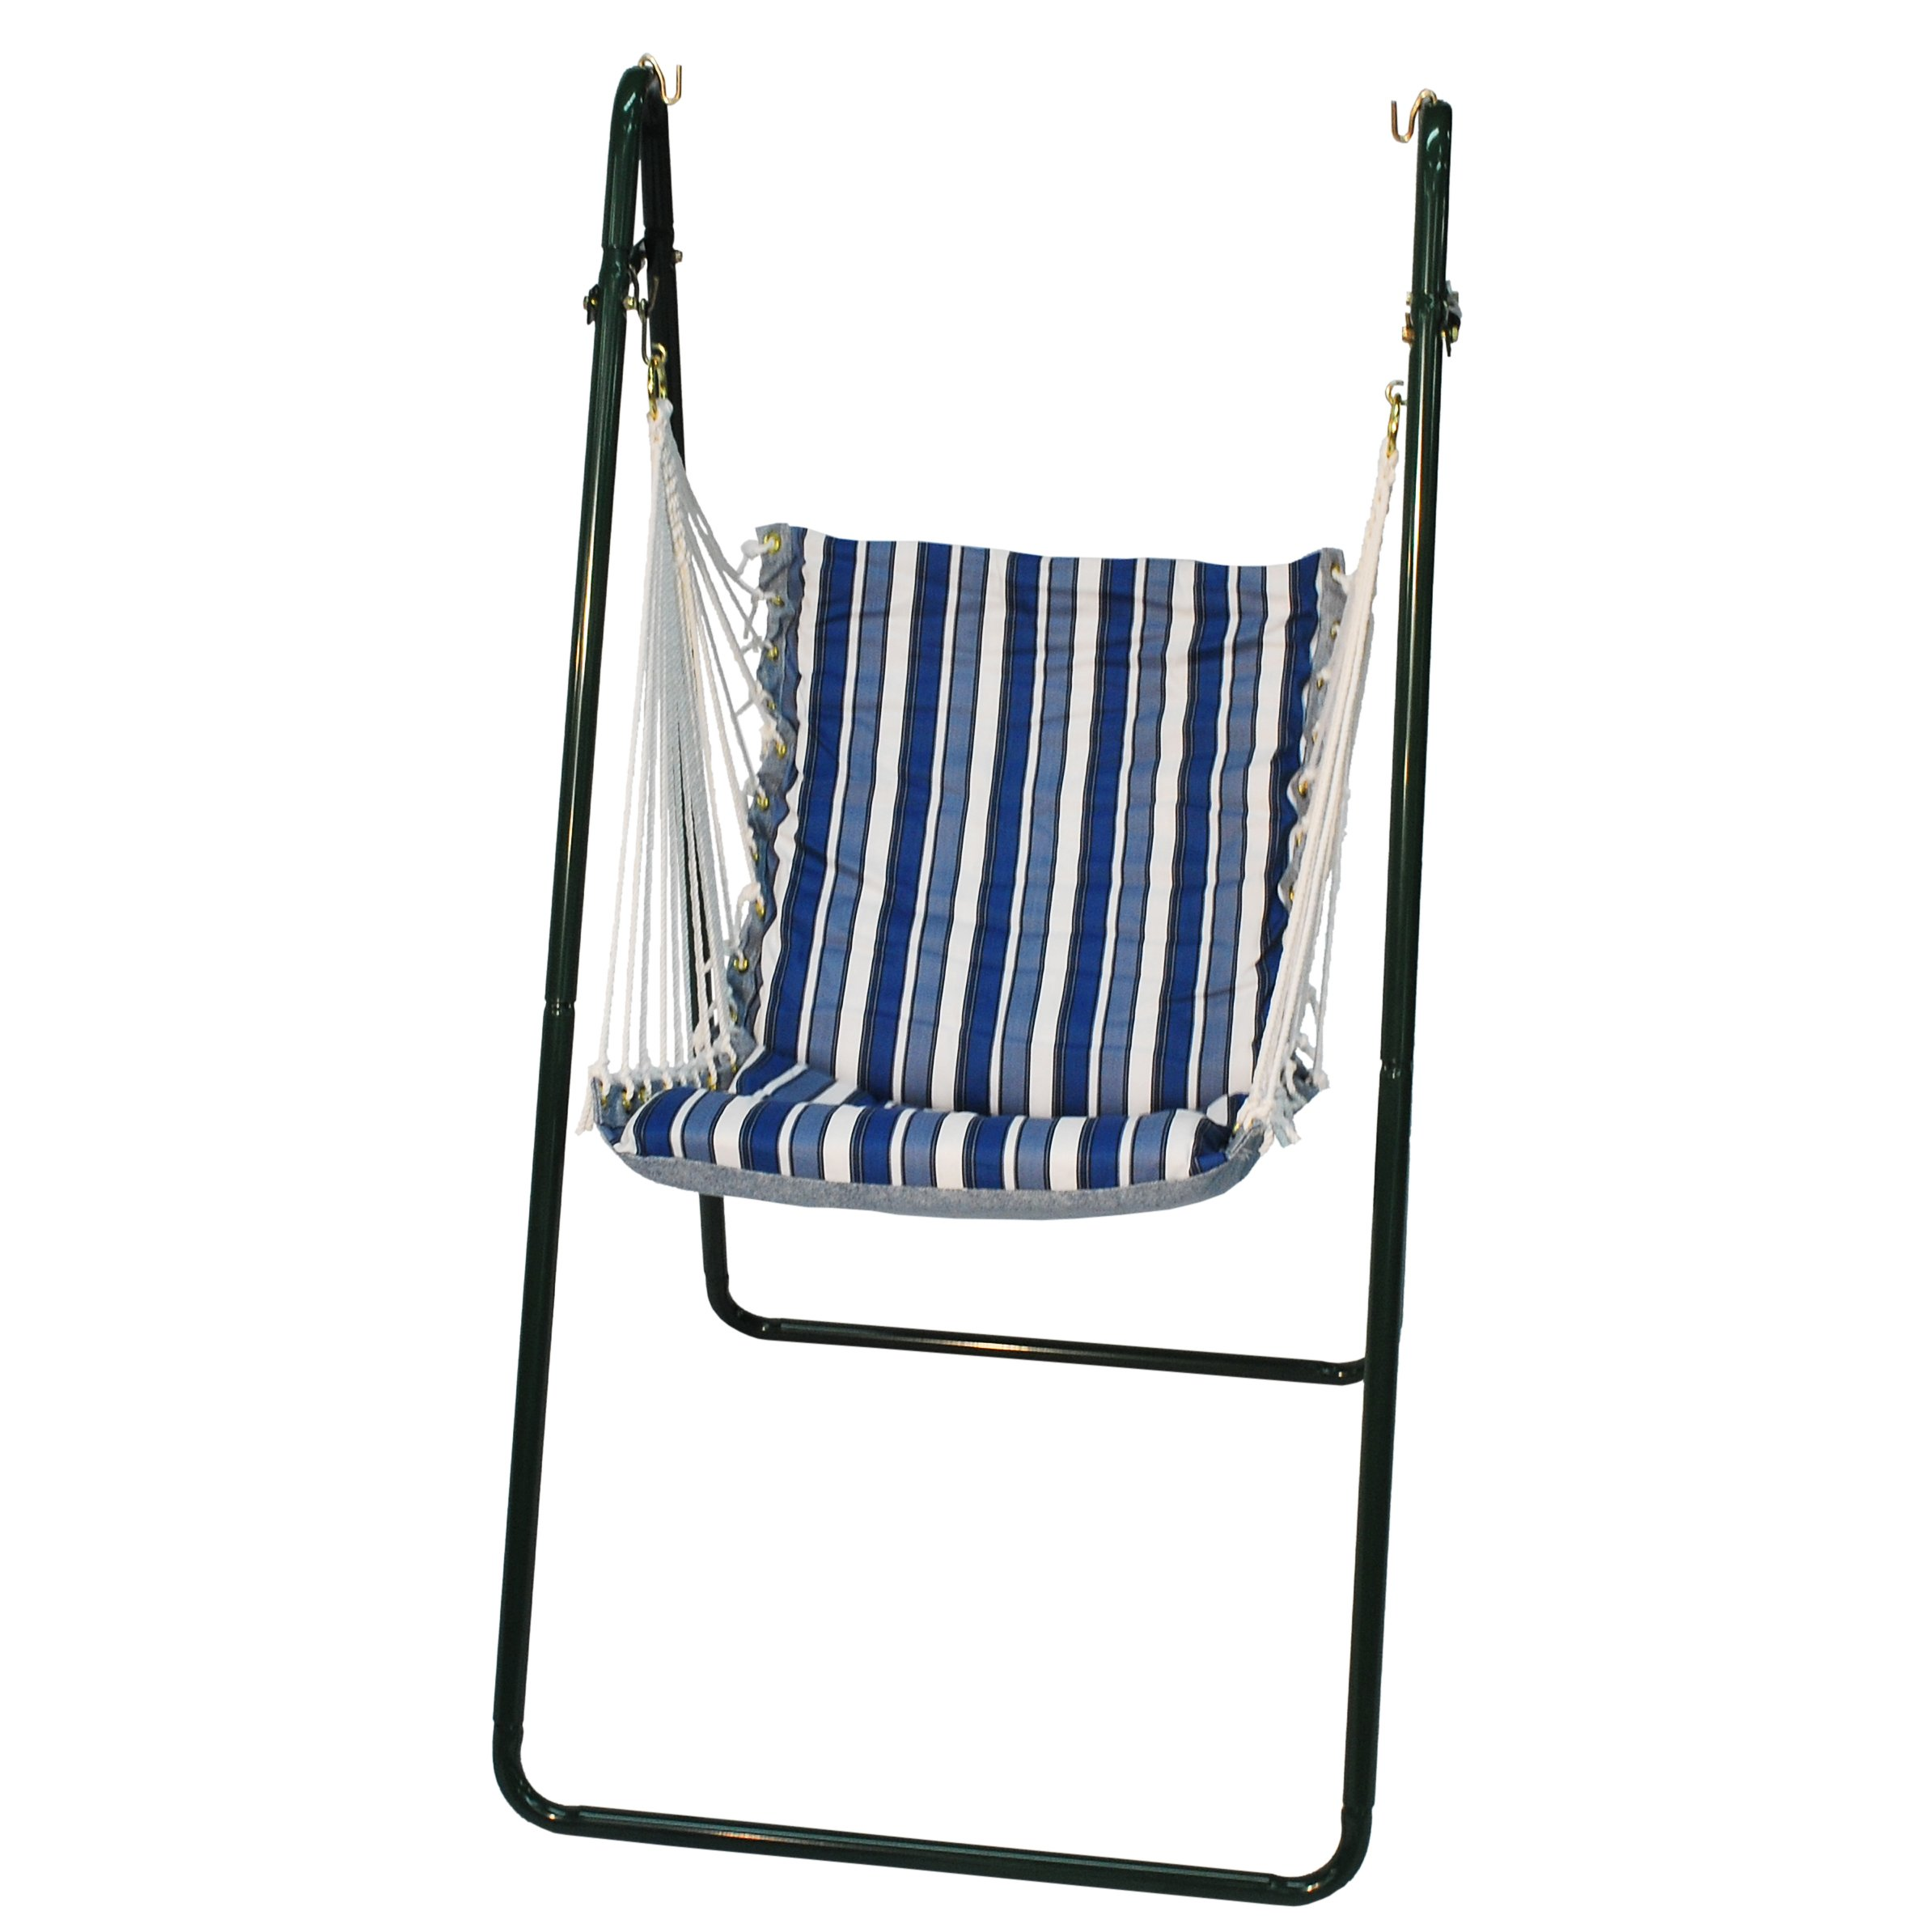 Algoma 1525-135142BR Swing Chair with Brass Colored Stand